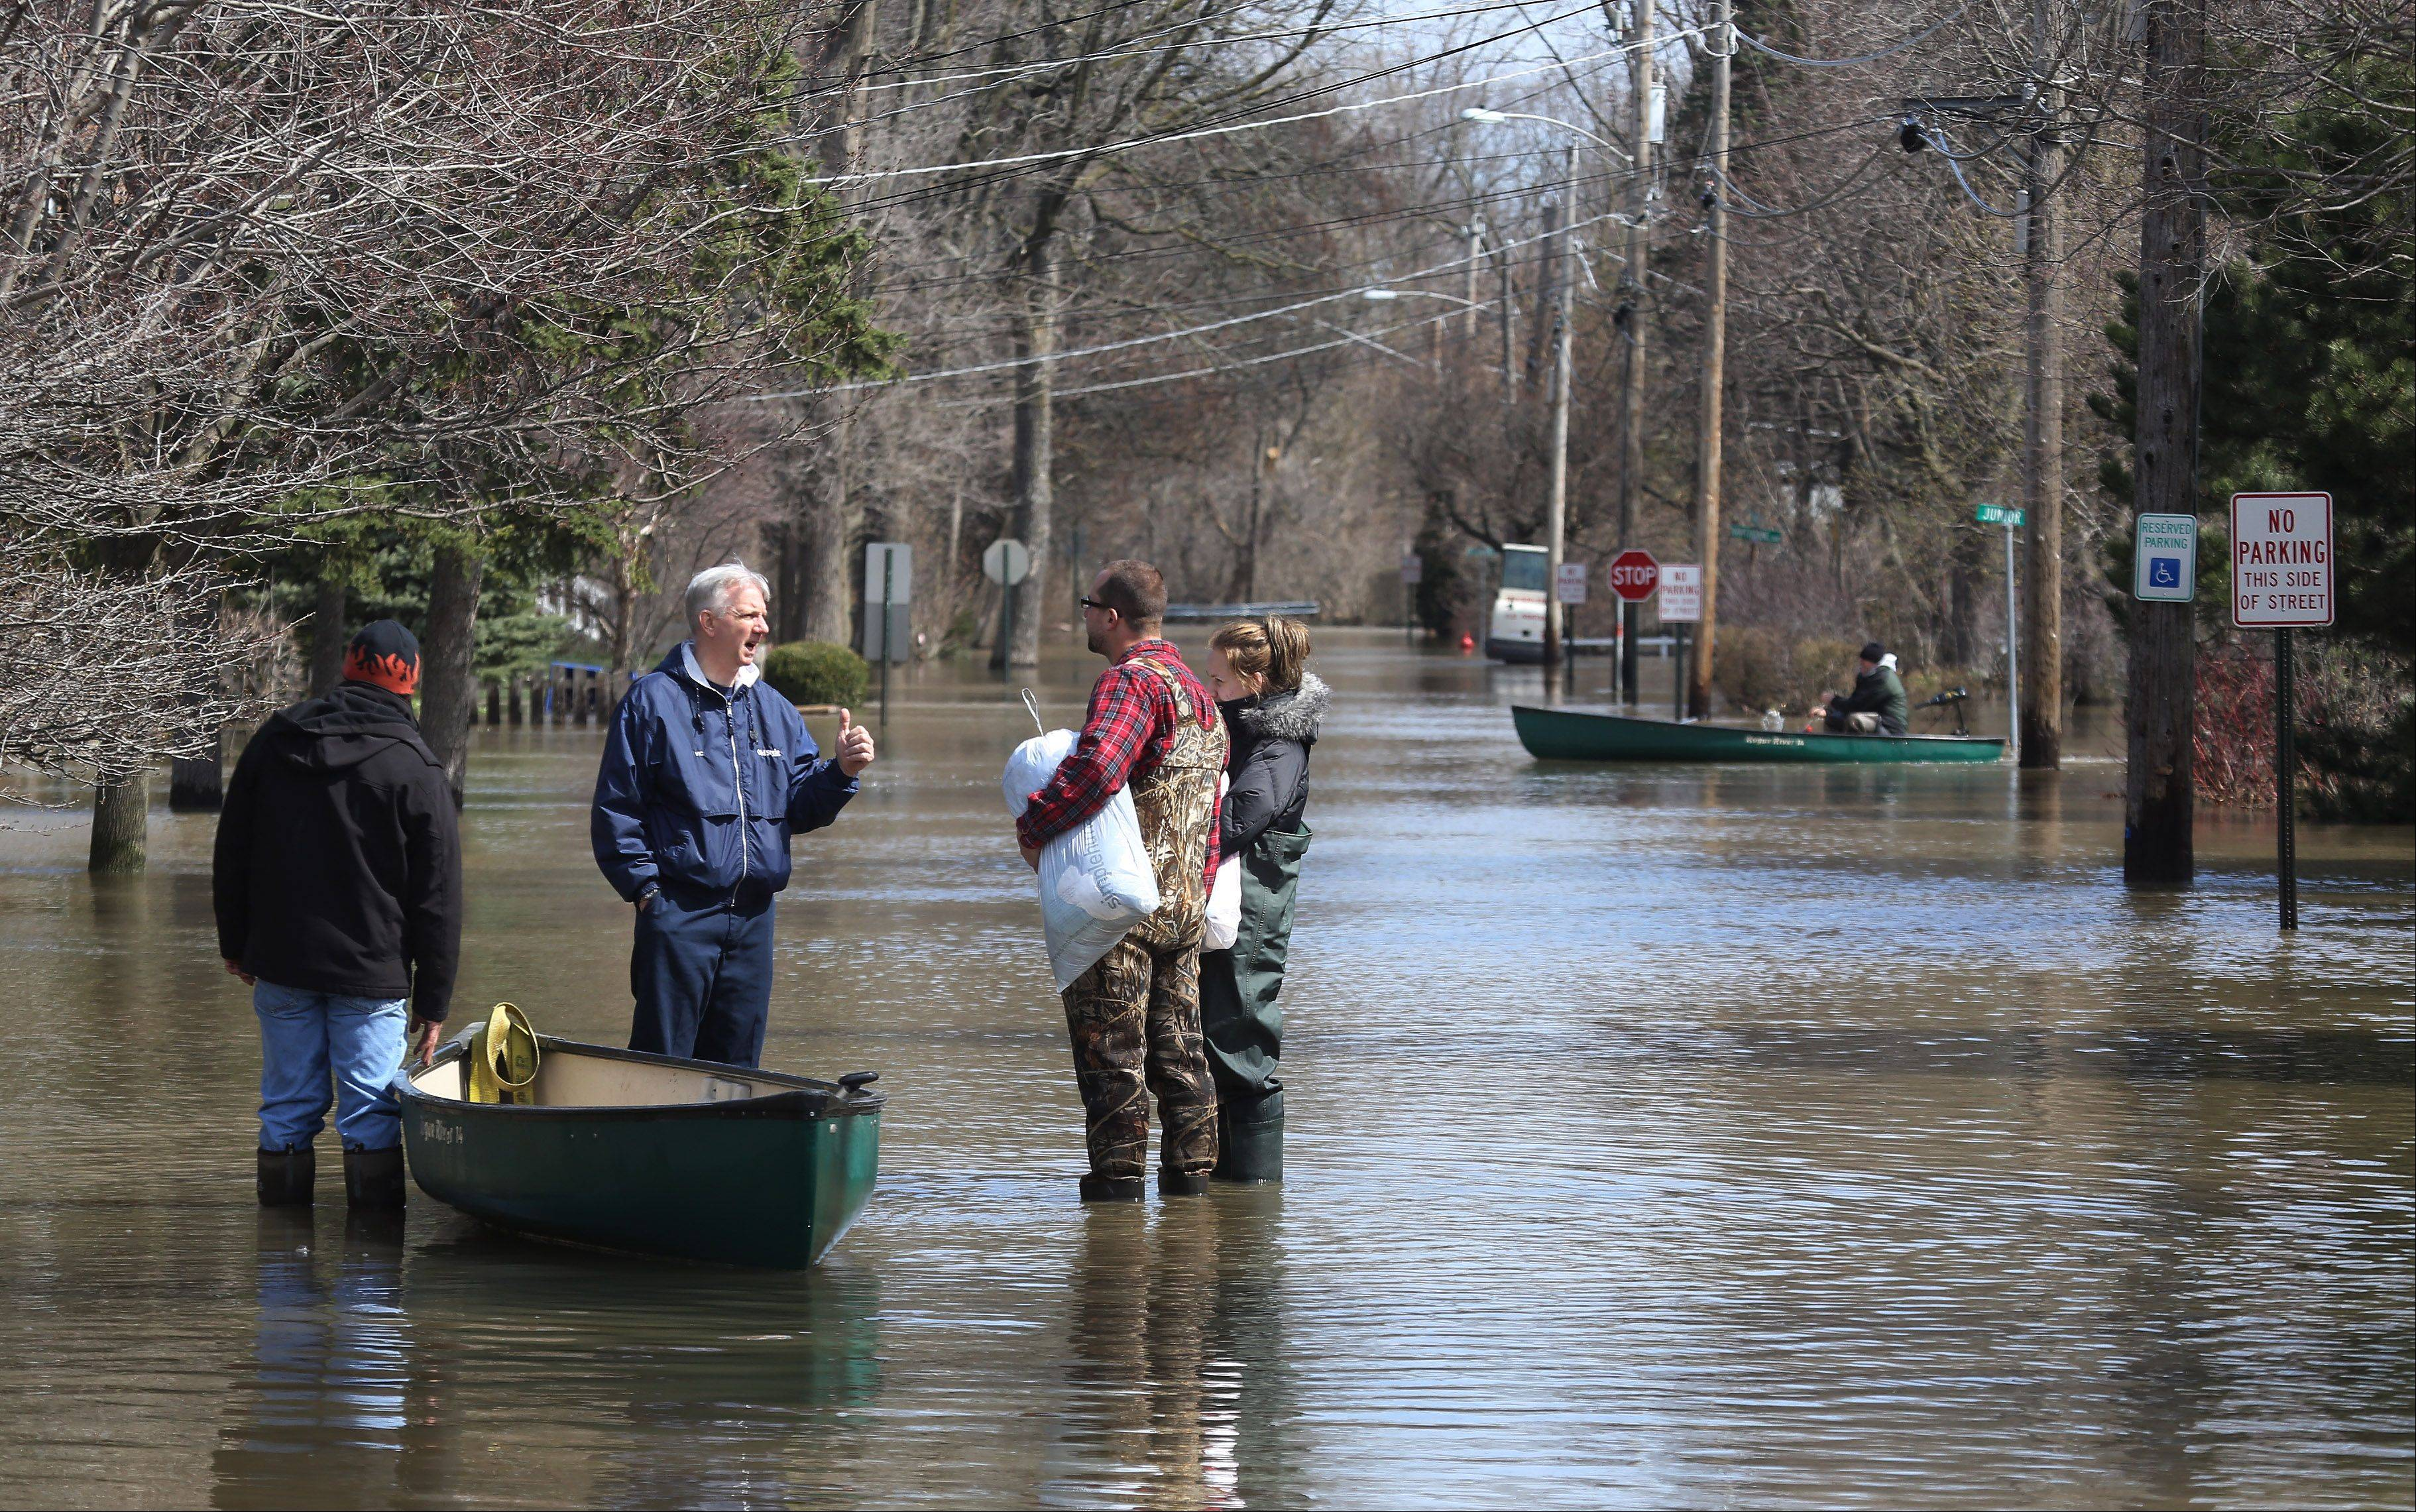 The mode of transportation around Des Plaines neighborhoods is by canoe, as Vic Kamka, center, talks to neighbors after flooding along the Des Plaines River Sunday.